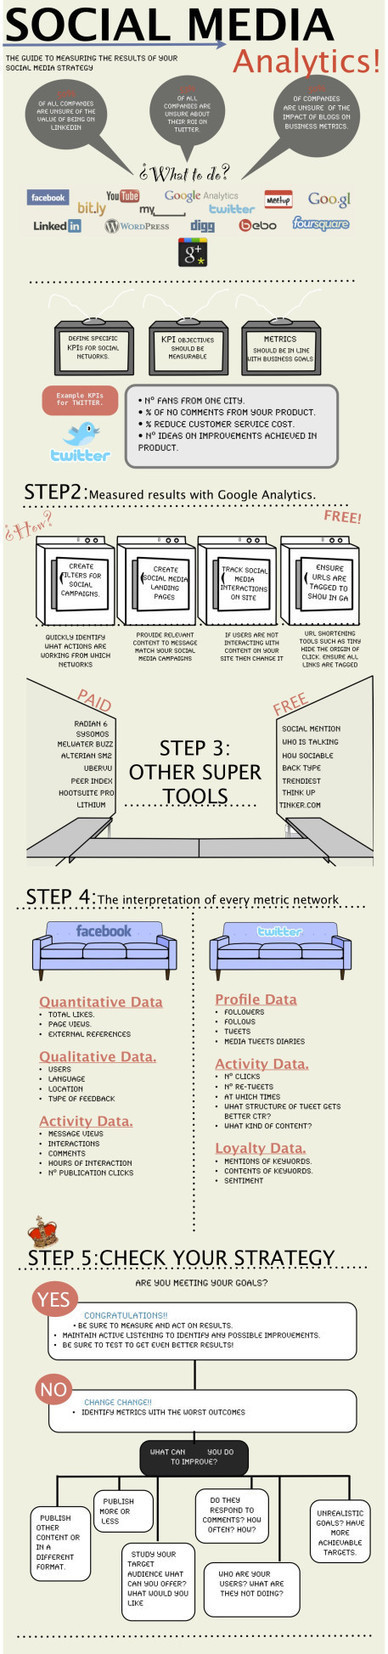 Social Media Analytics: How's Your Social Media Strategy Going? | Business 2 Community | Online Relations & Community management | Scoop.it